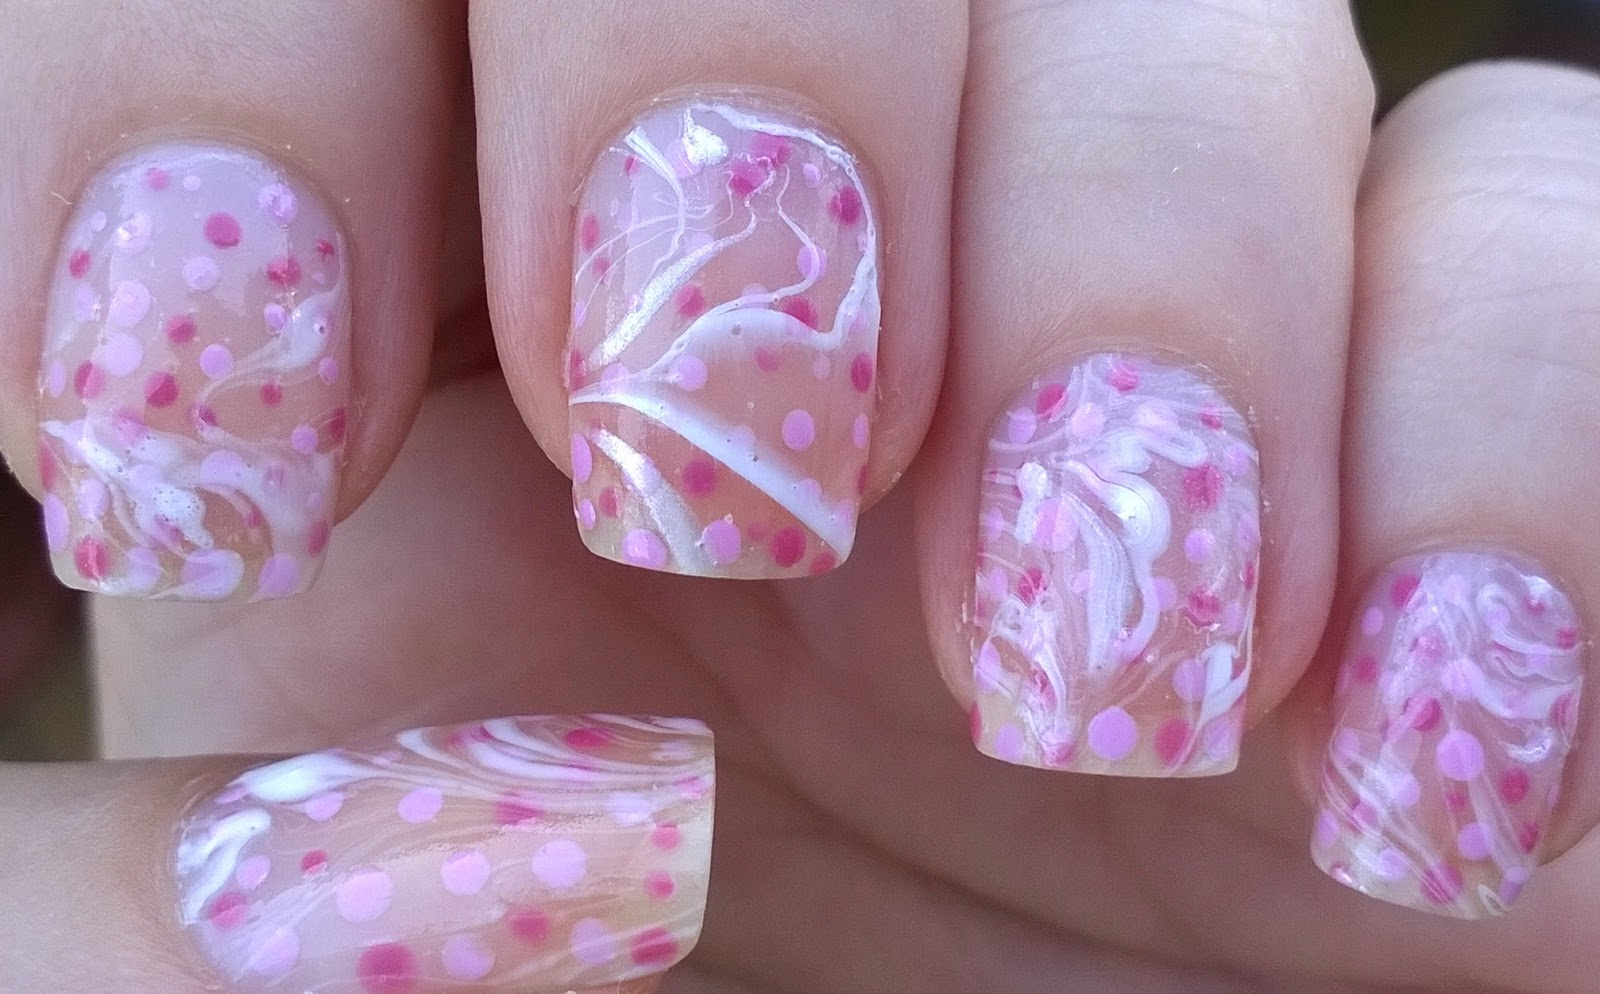 Life World Women Negative Space Water Marble Nail Art In Pink White